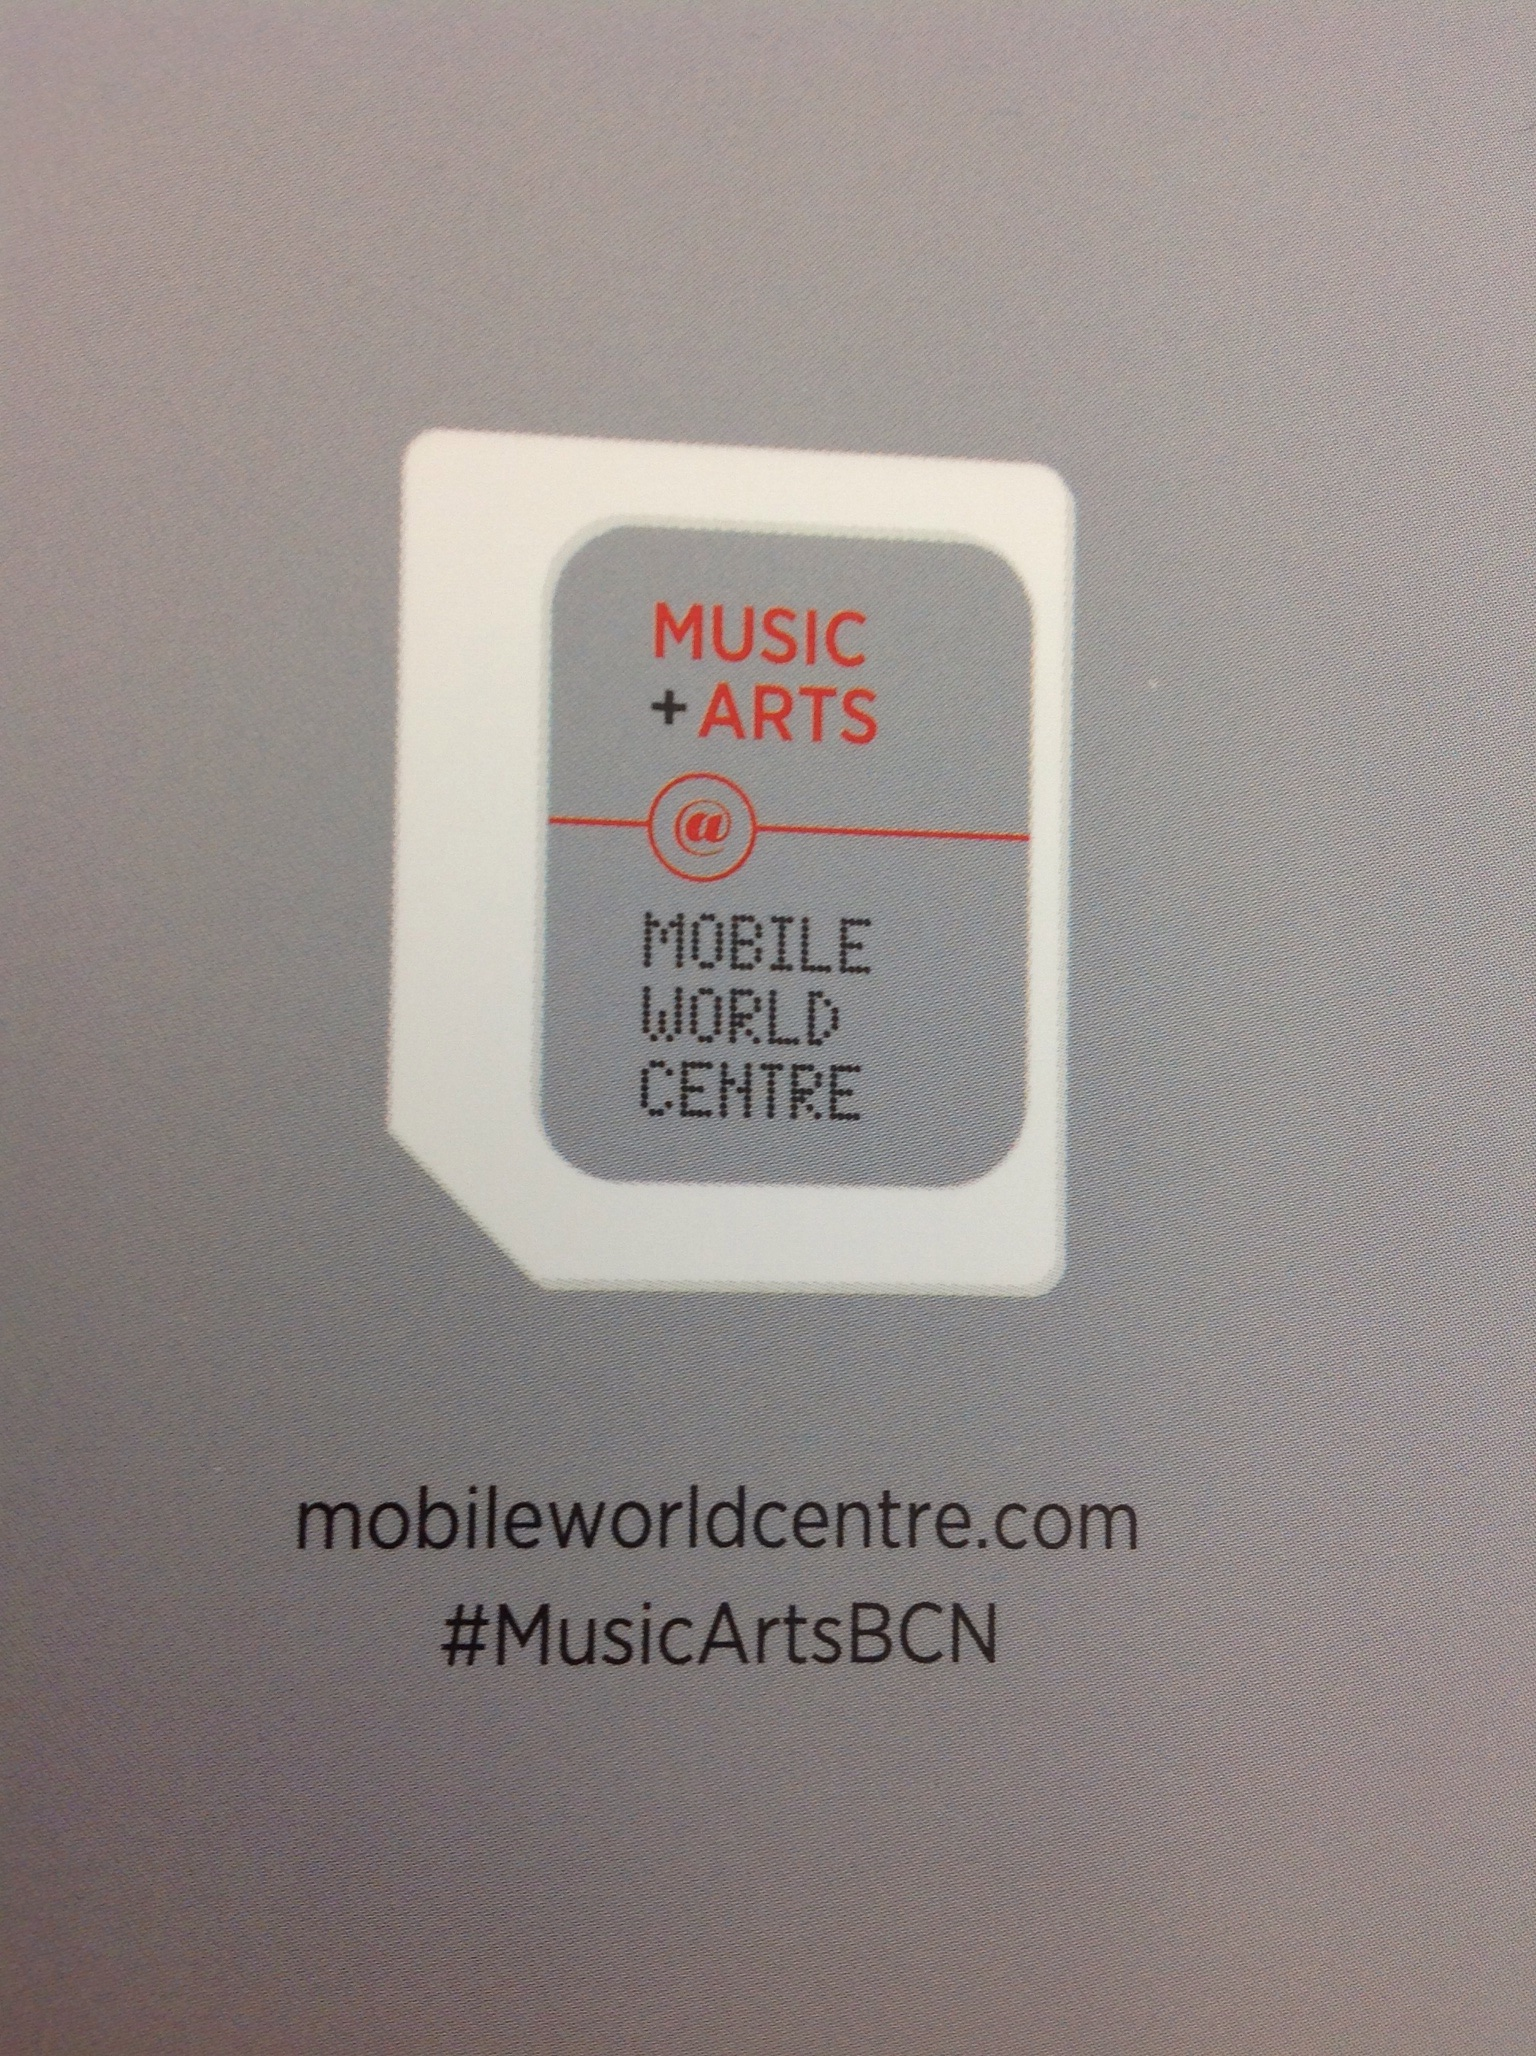 Music+Arts, la exposición con etiqueta del Mobile World Centre